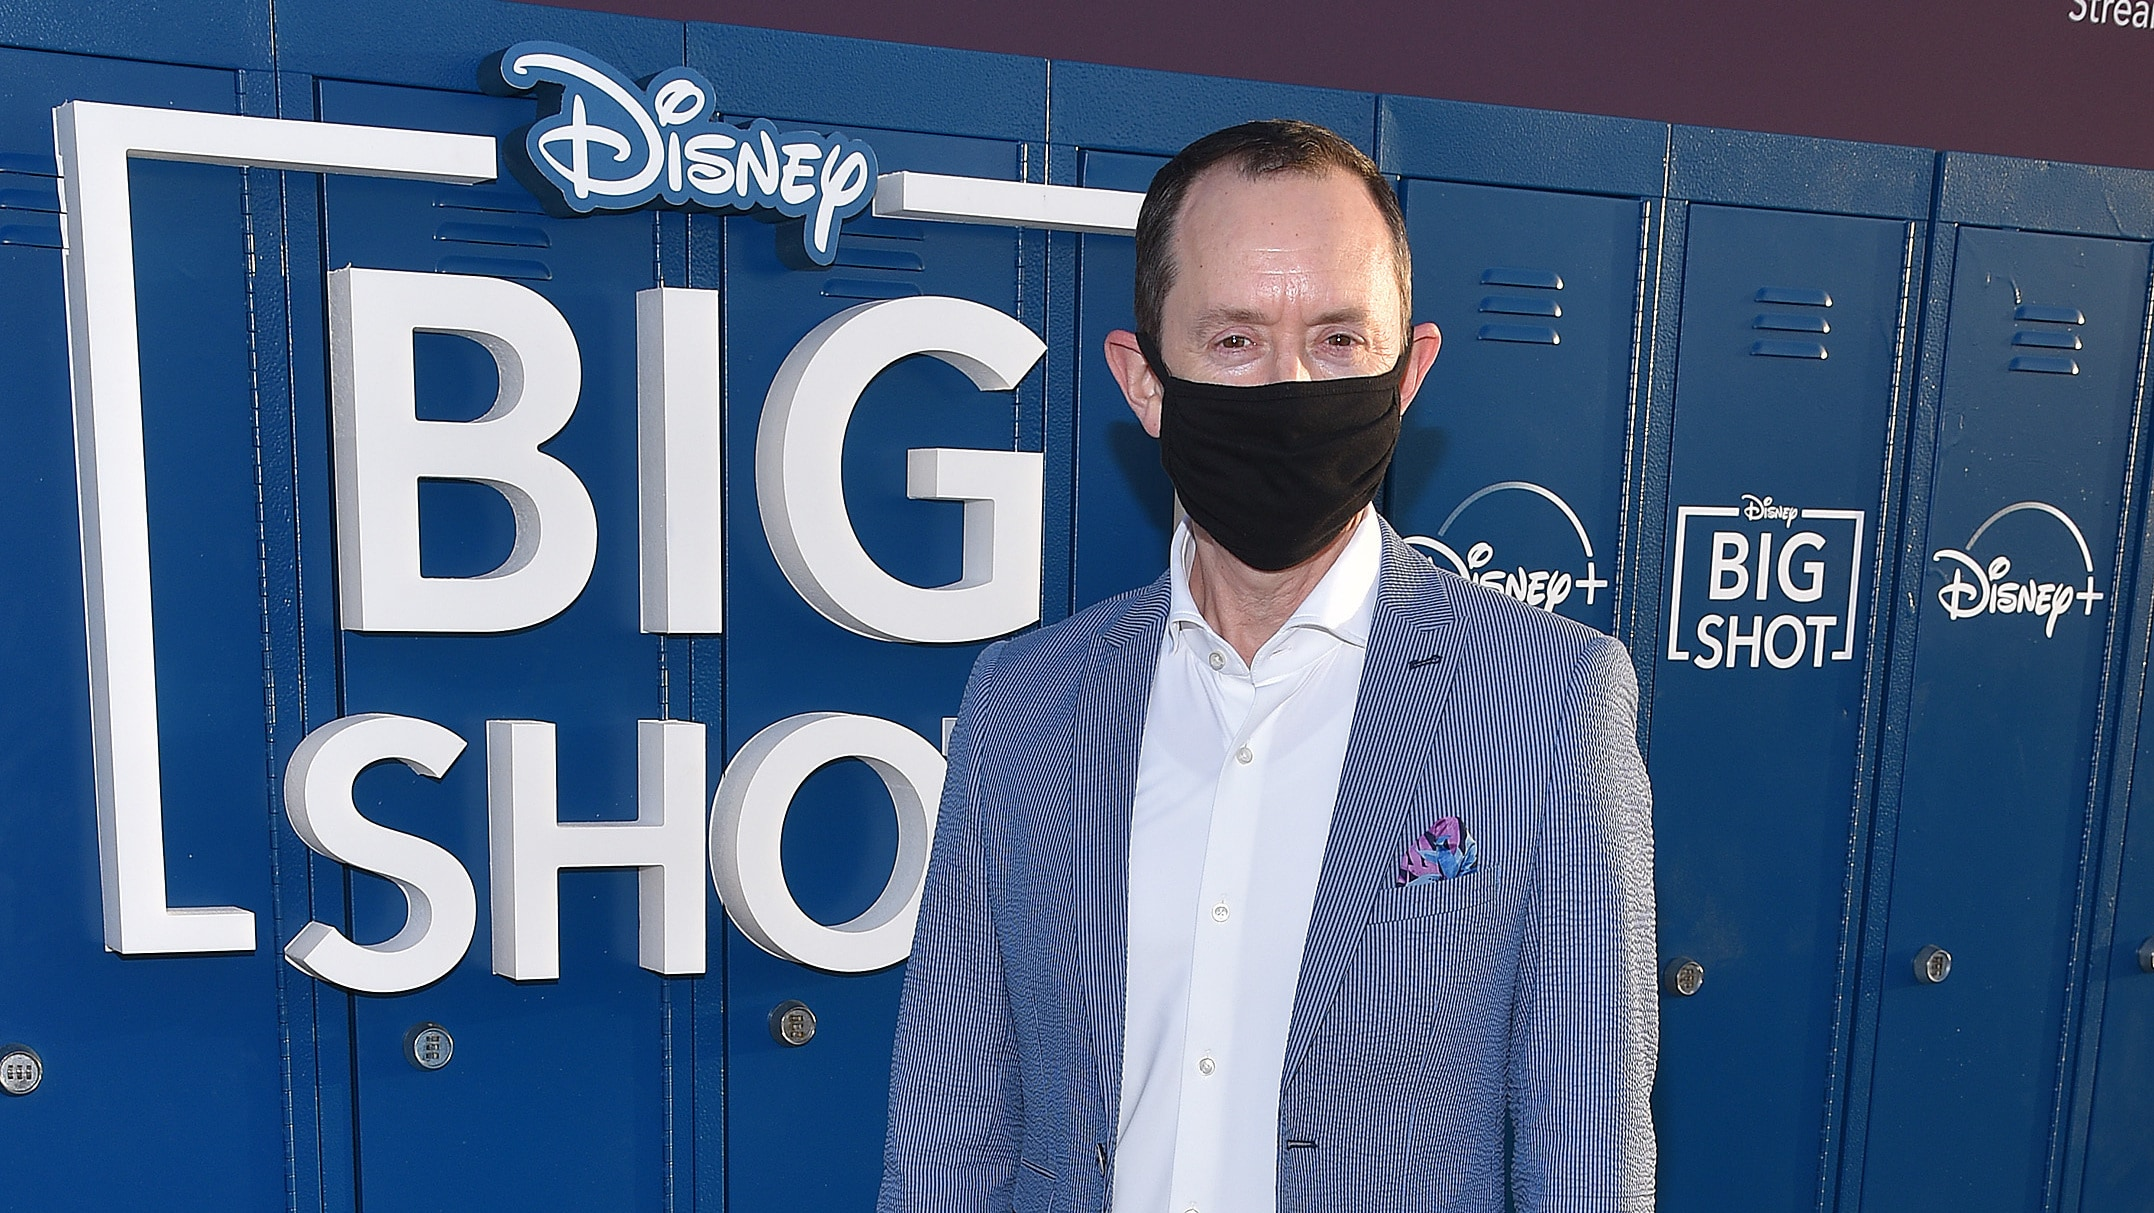 """LOS ANGELES, CA - APRIL 14: Richard Robichaux attends the world premiere drive-in screening of the Disney + original series """"BIG SHOT"""" at The Grove in Los Angeles, California on April 14, 2021. (Photo by Stewart Cook/Disney +/PictureGroup)"""